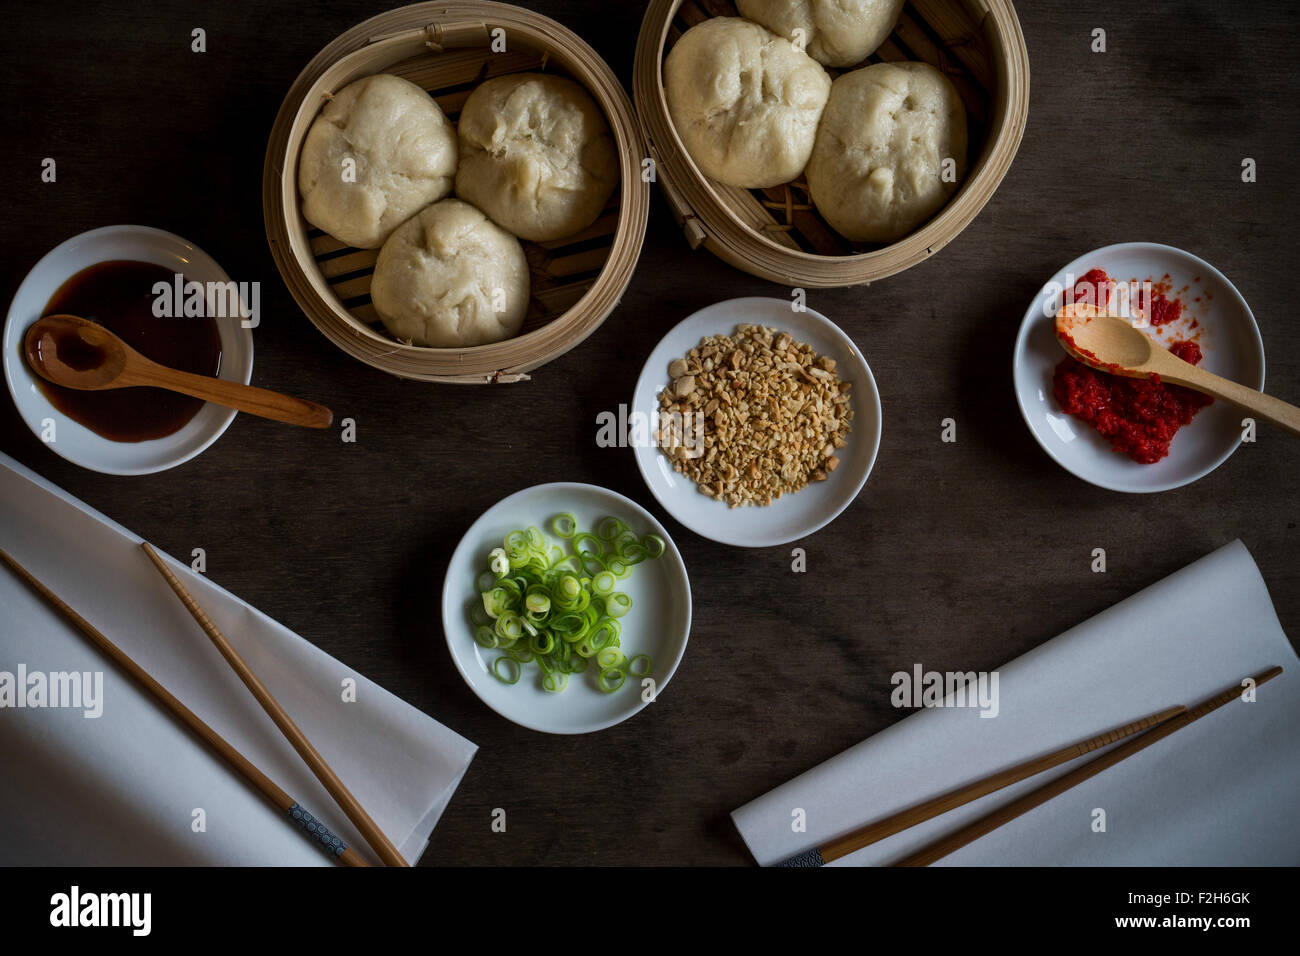 Asian street food in bamboo steamers on wooden tabletop. Top view. - Stock Image